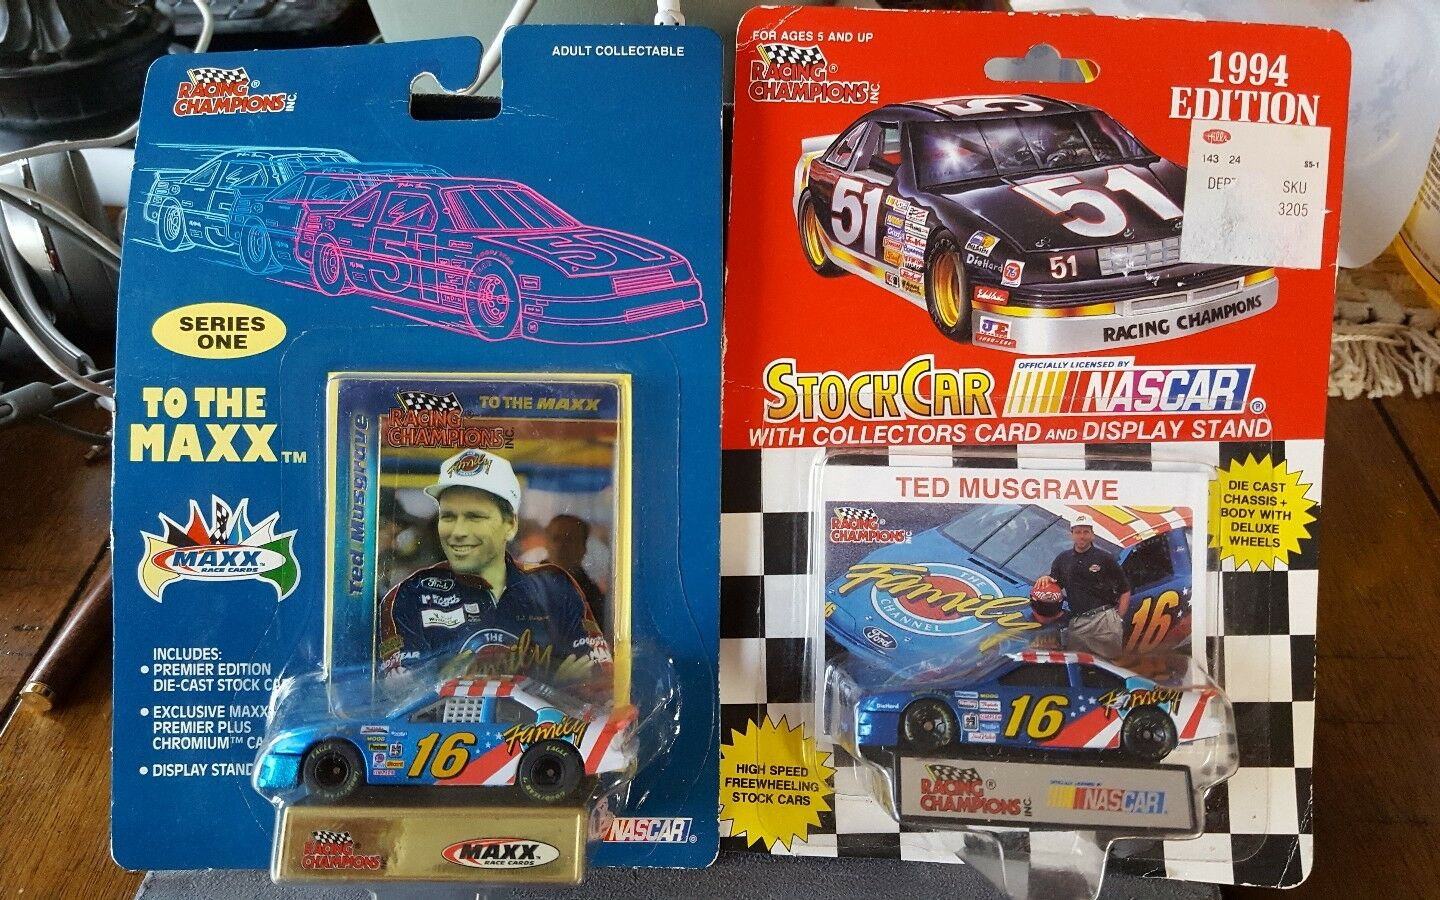 RACING CHAMPIONS CHAMPIONS CHAMPIONS  TED MUSGRAVE [1 64 SCALE] LOT OF 2 CARS NIP 0e7445